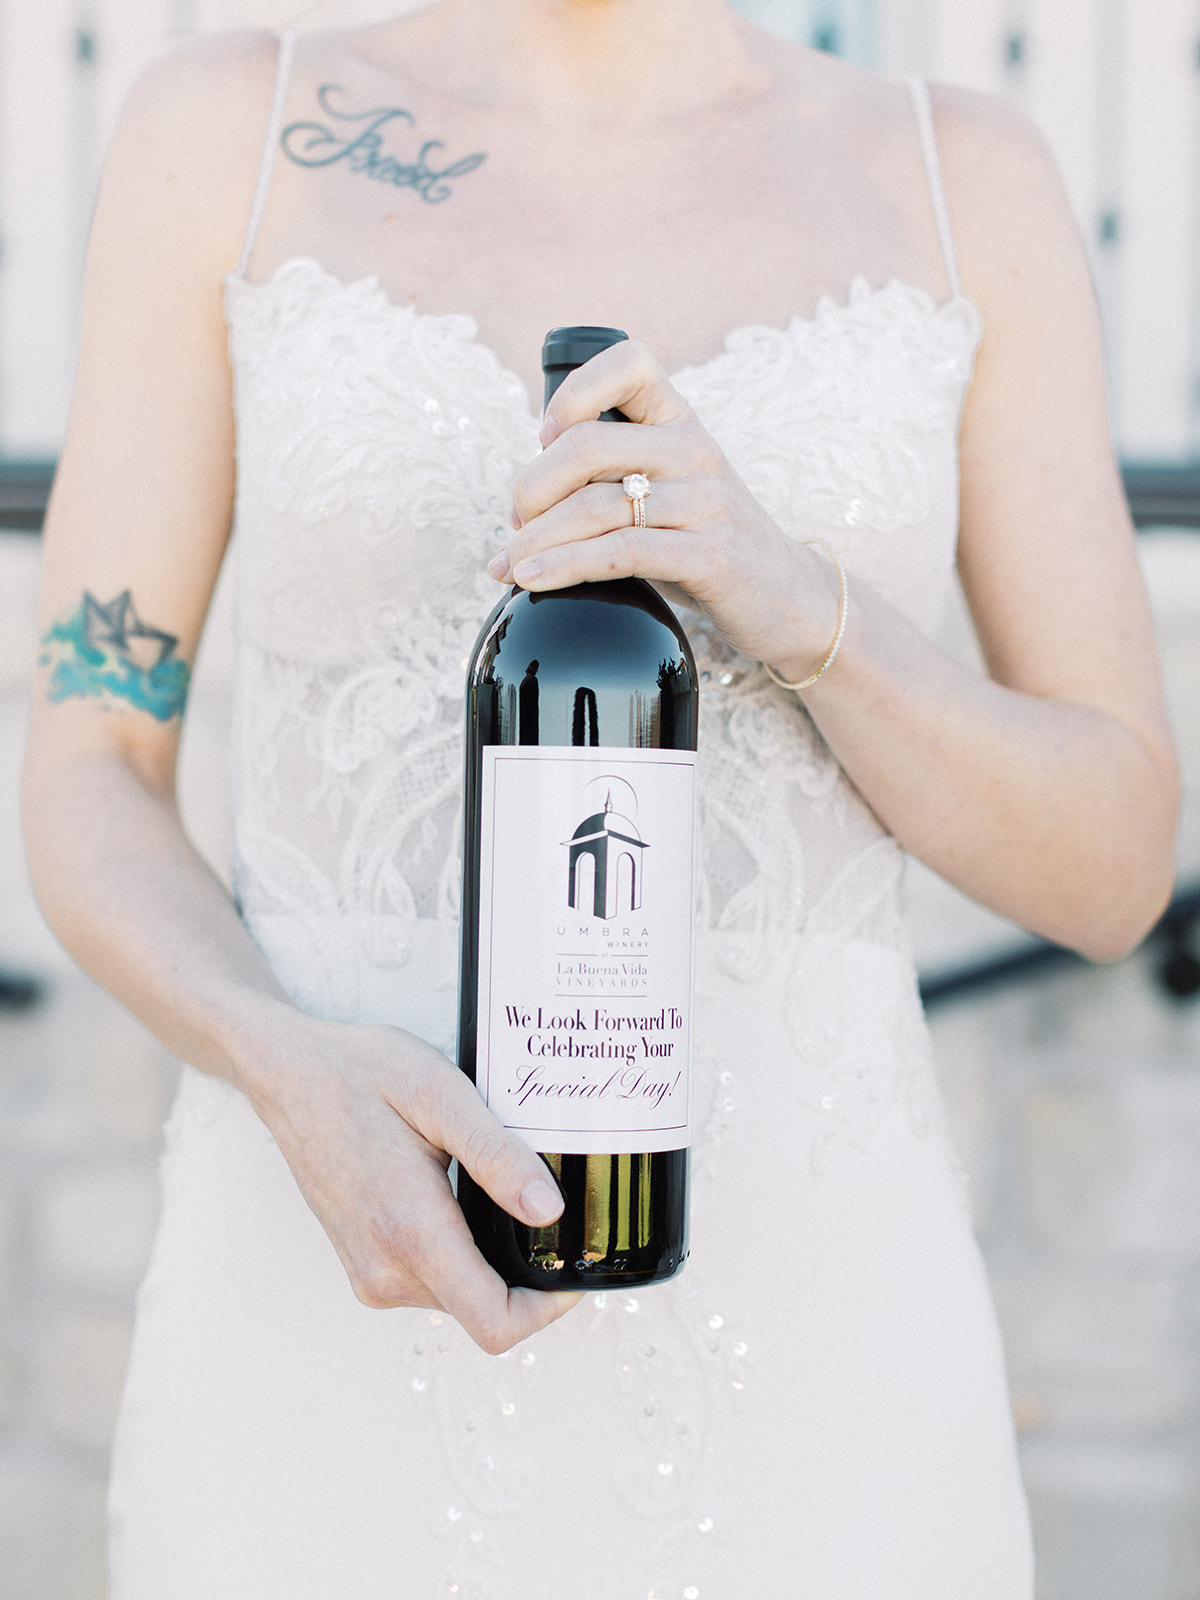 Wine for vineyard wedding: Elopement vineyard wedding at Umbra Winery by Alexa Kay Events. See more wedding ideas at alexakayevents.com!